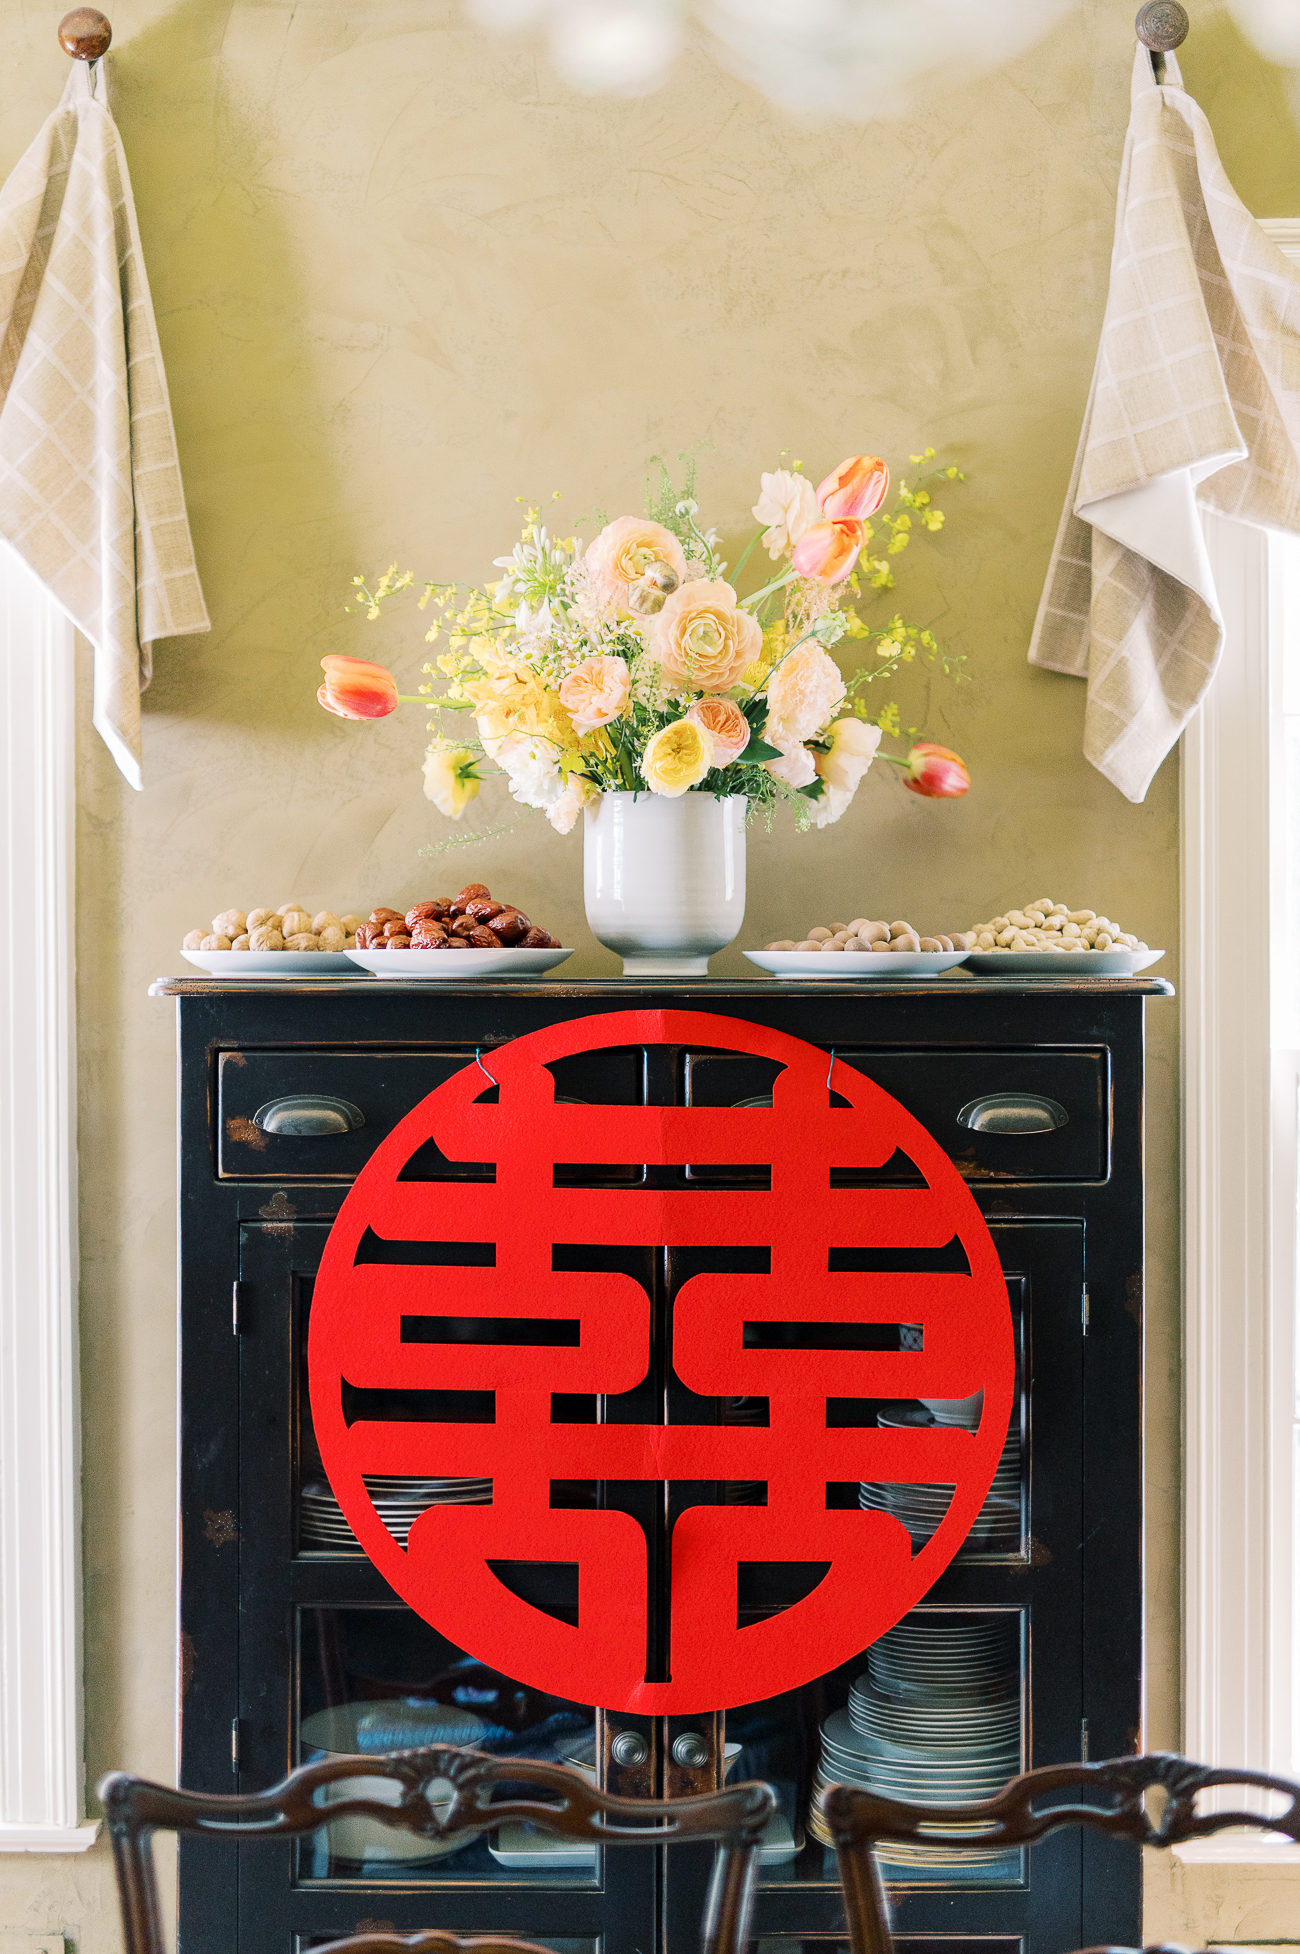 Tea Ceremony decoration with flowers and double happiness